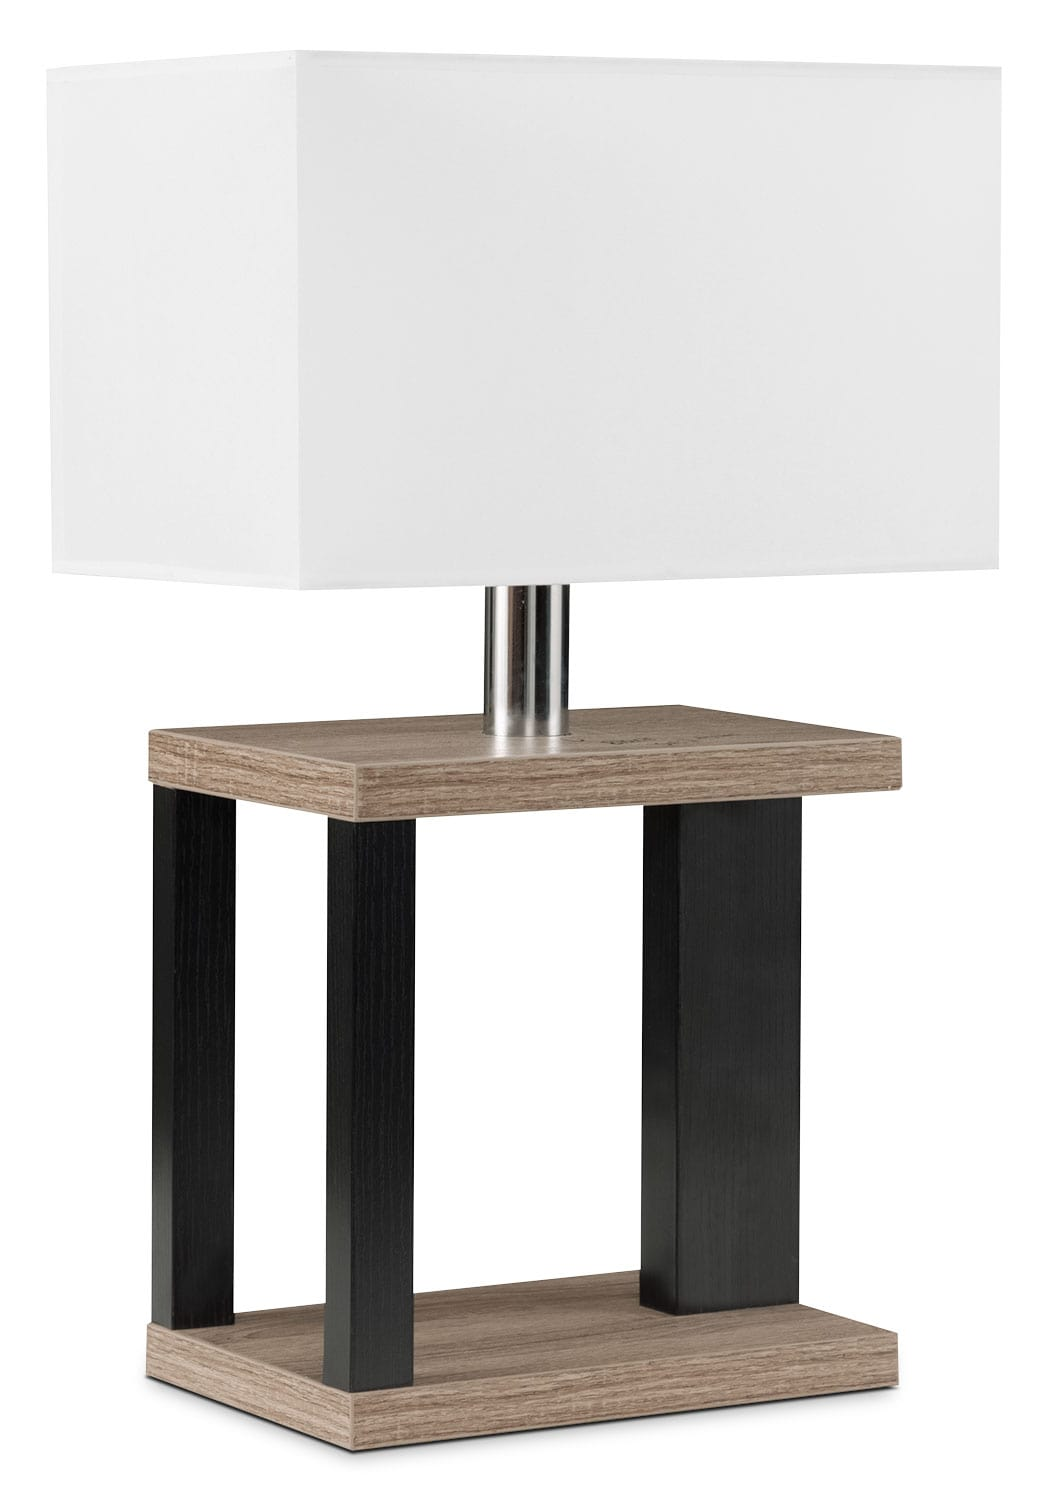 Dark Taupe Table Lamp with Black Accents and White Shade